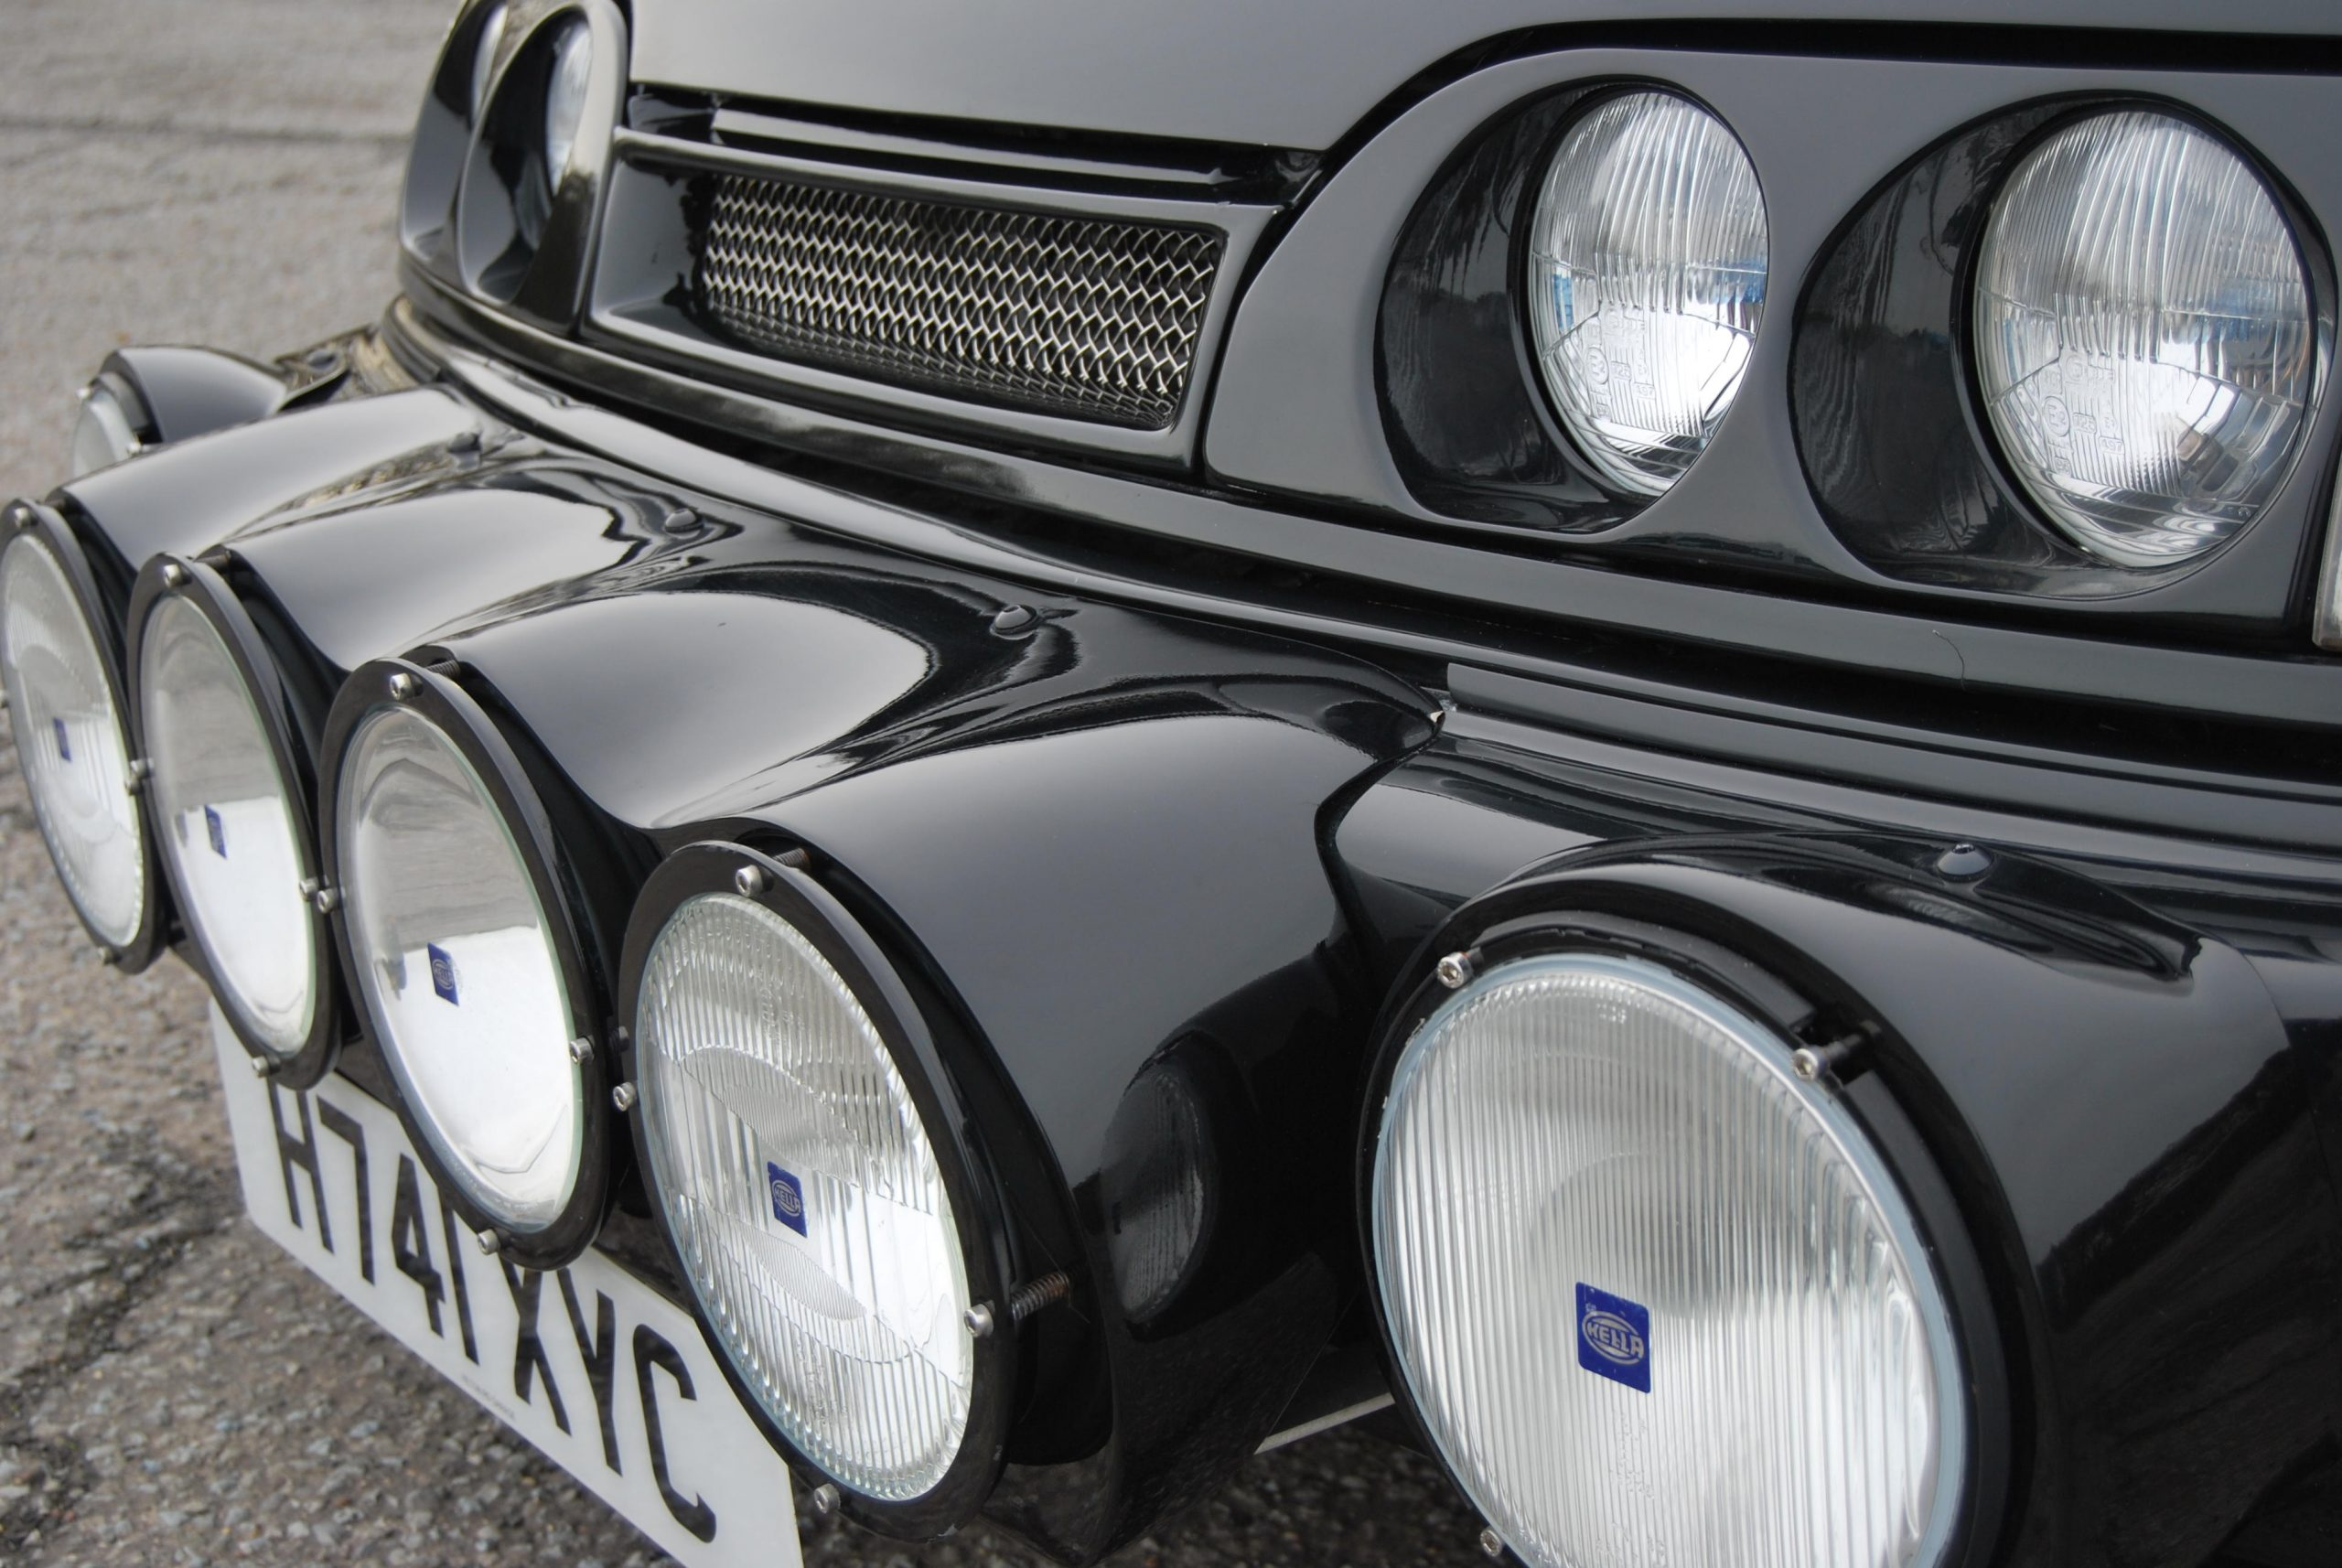 1990 Ford Sierra Sapphire RS Cosworth 4x4 Front Fascia